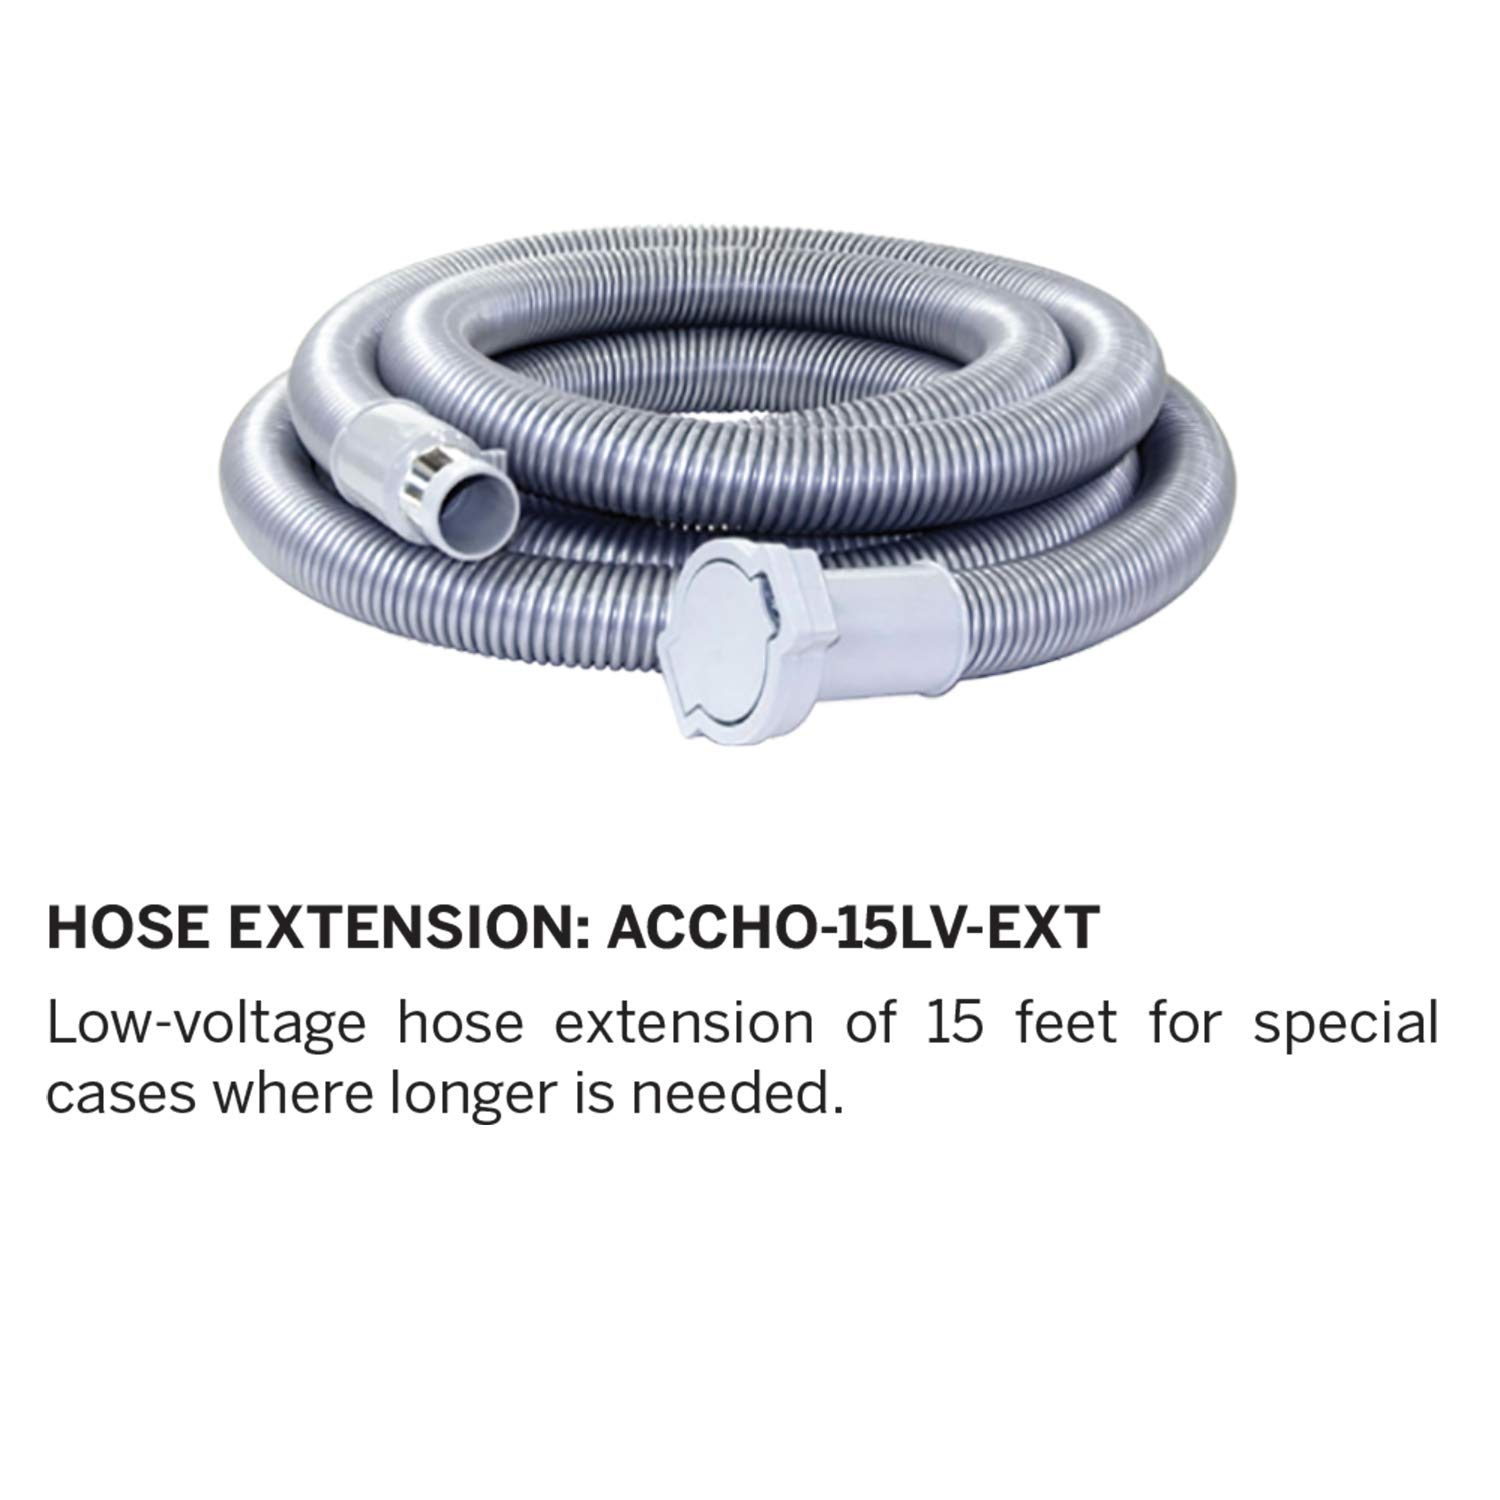 Nadair Universal Low-Voltage Central Vacuum, 15ft Hose Extension, 15 FT, Grey